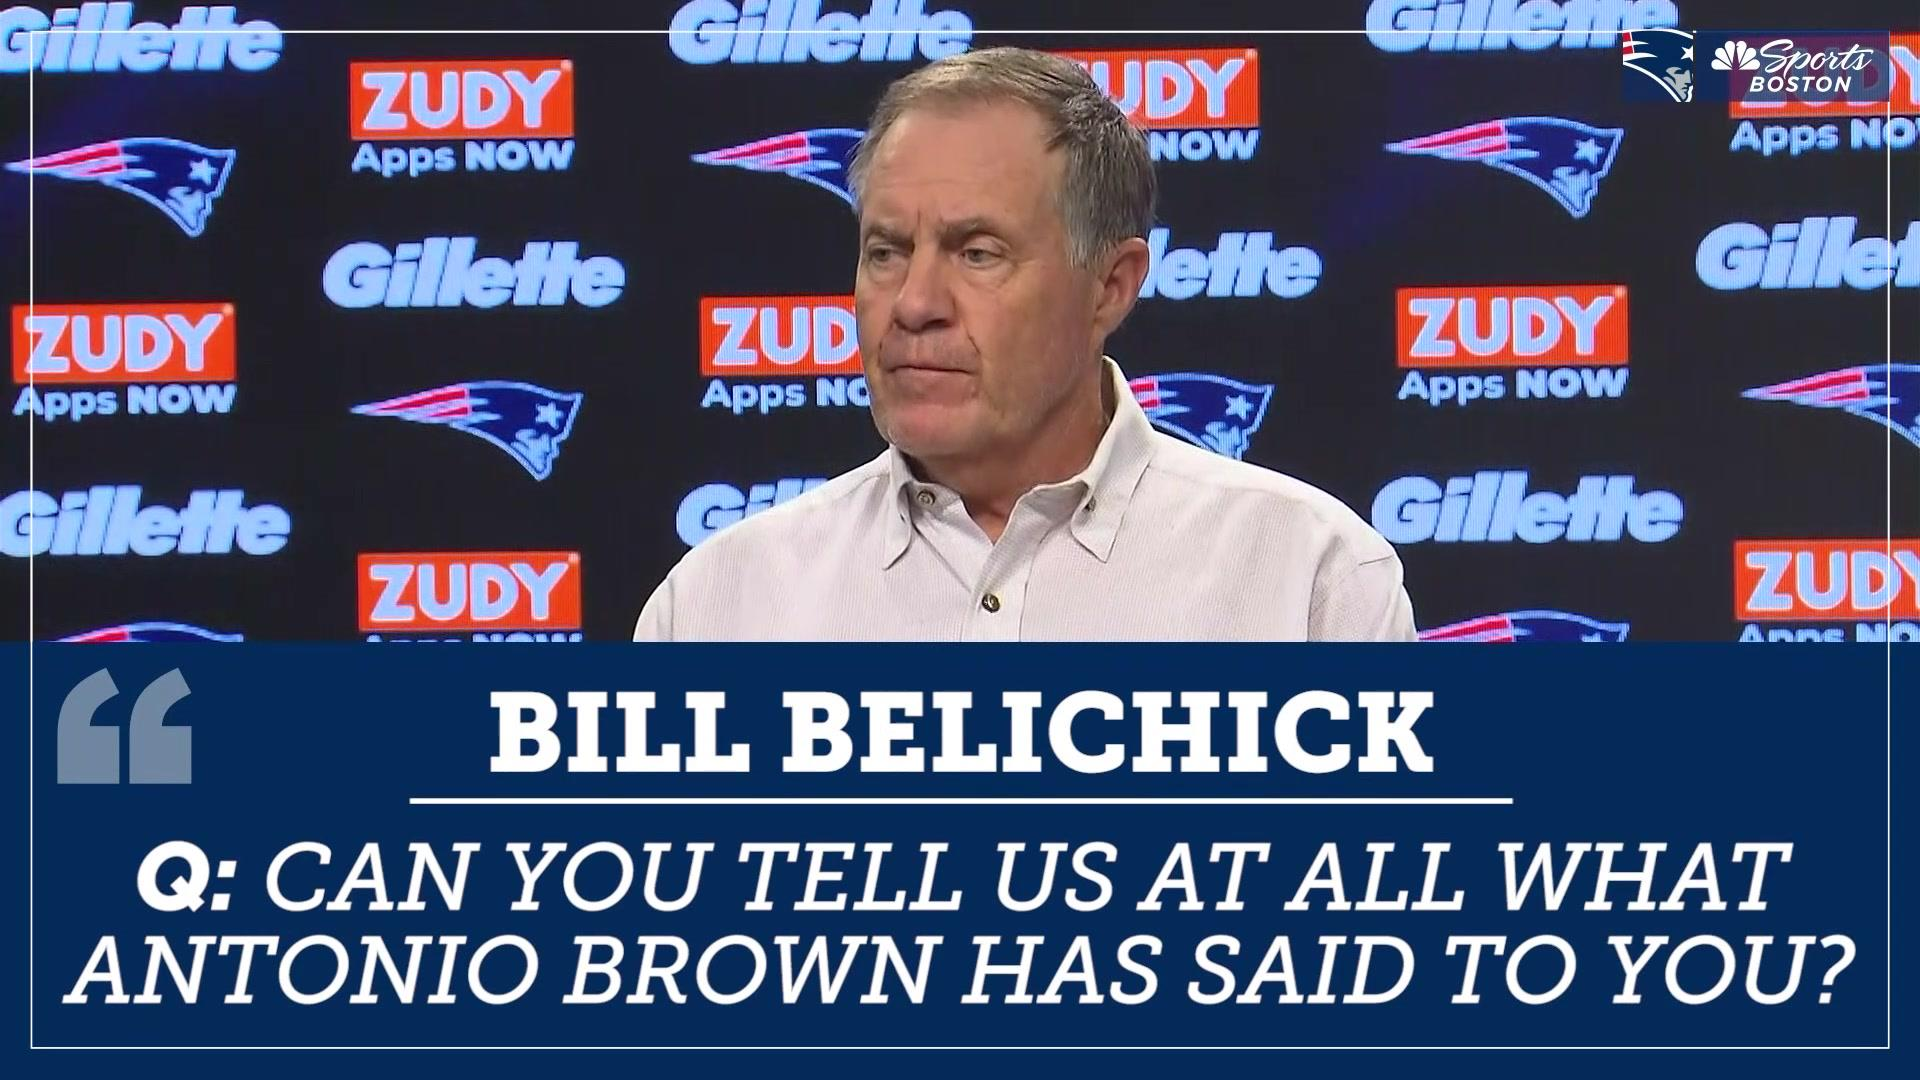 Bill Belichick fends off media's questions on Antonio Brown situation